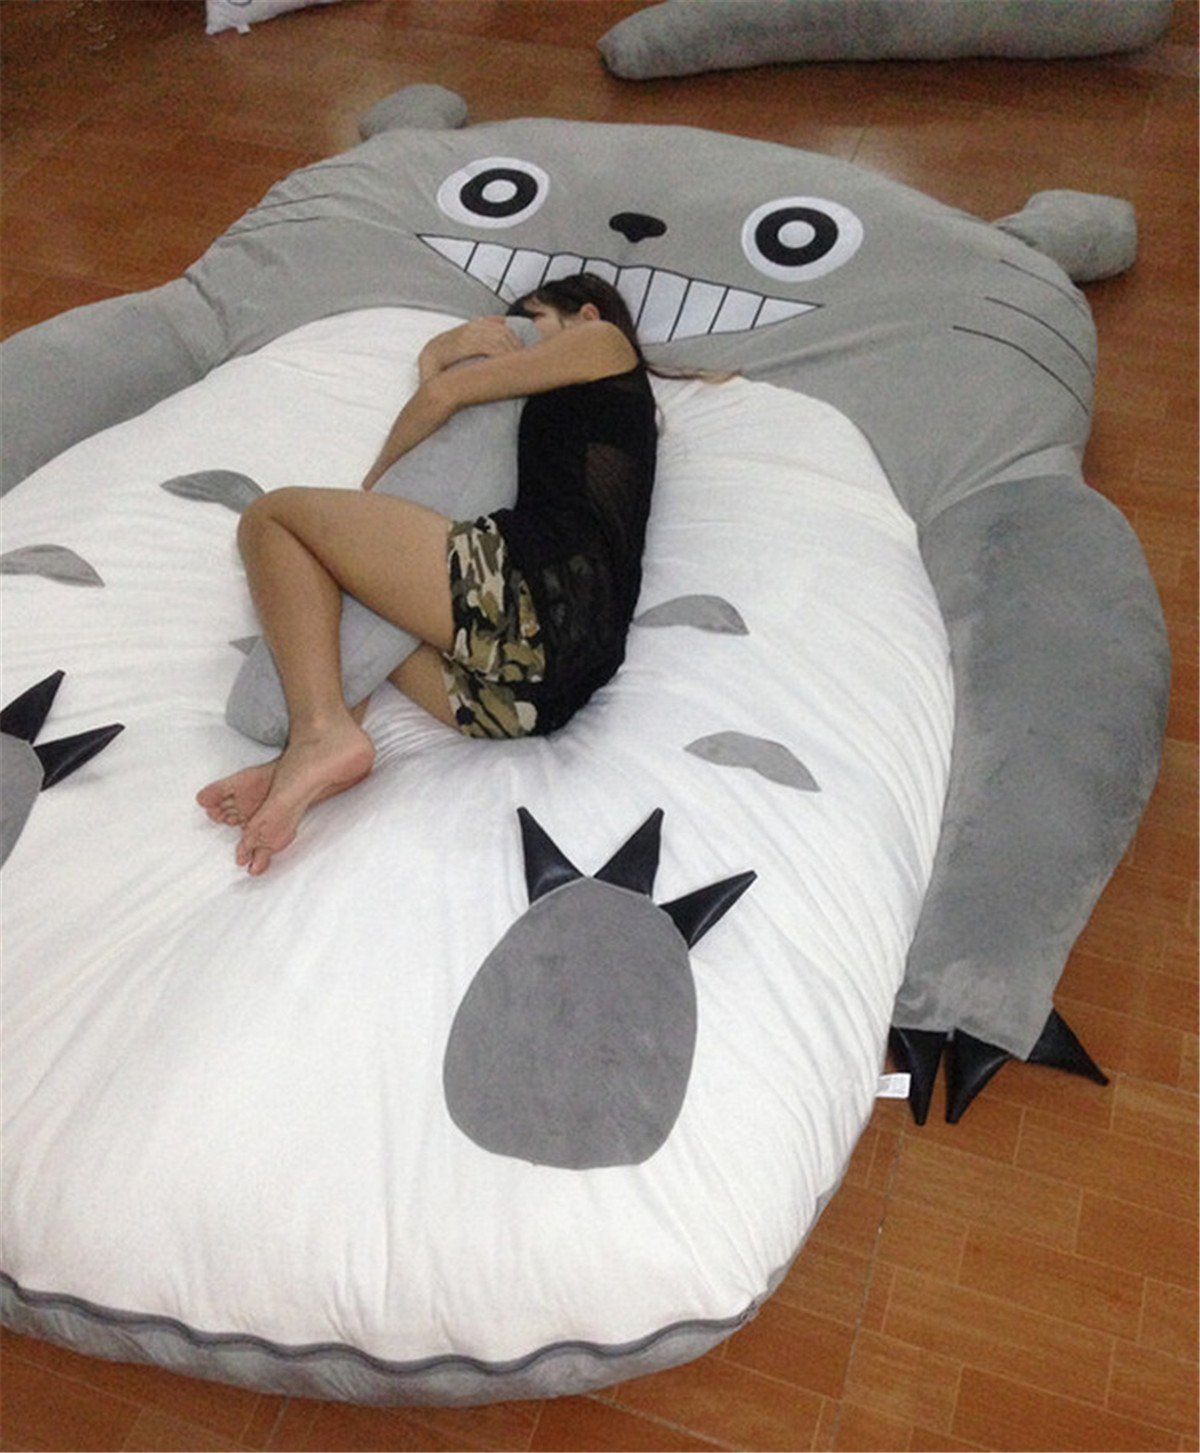 HOT SALE Children's and Adult Totoro Design Big Sofa Totoro Bed Mattress Sleeping Bag Mattress by VU ROUL (Image #6)